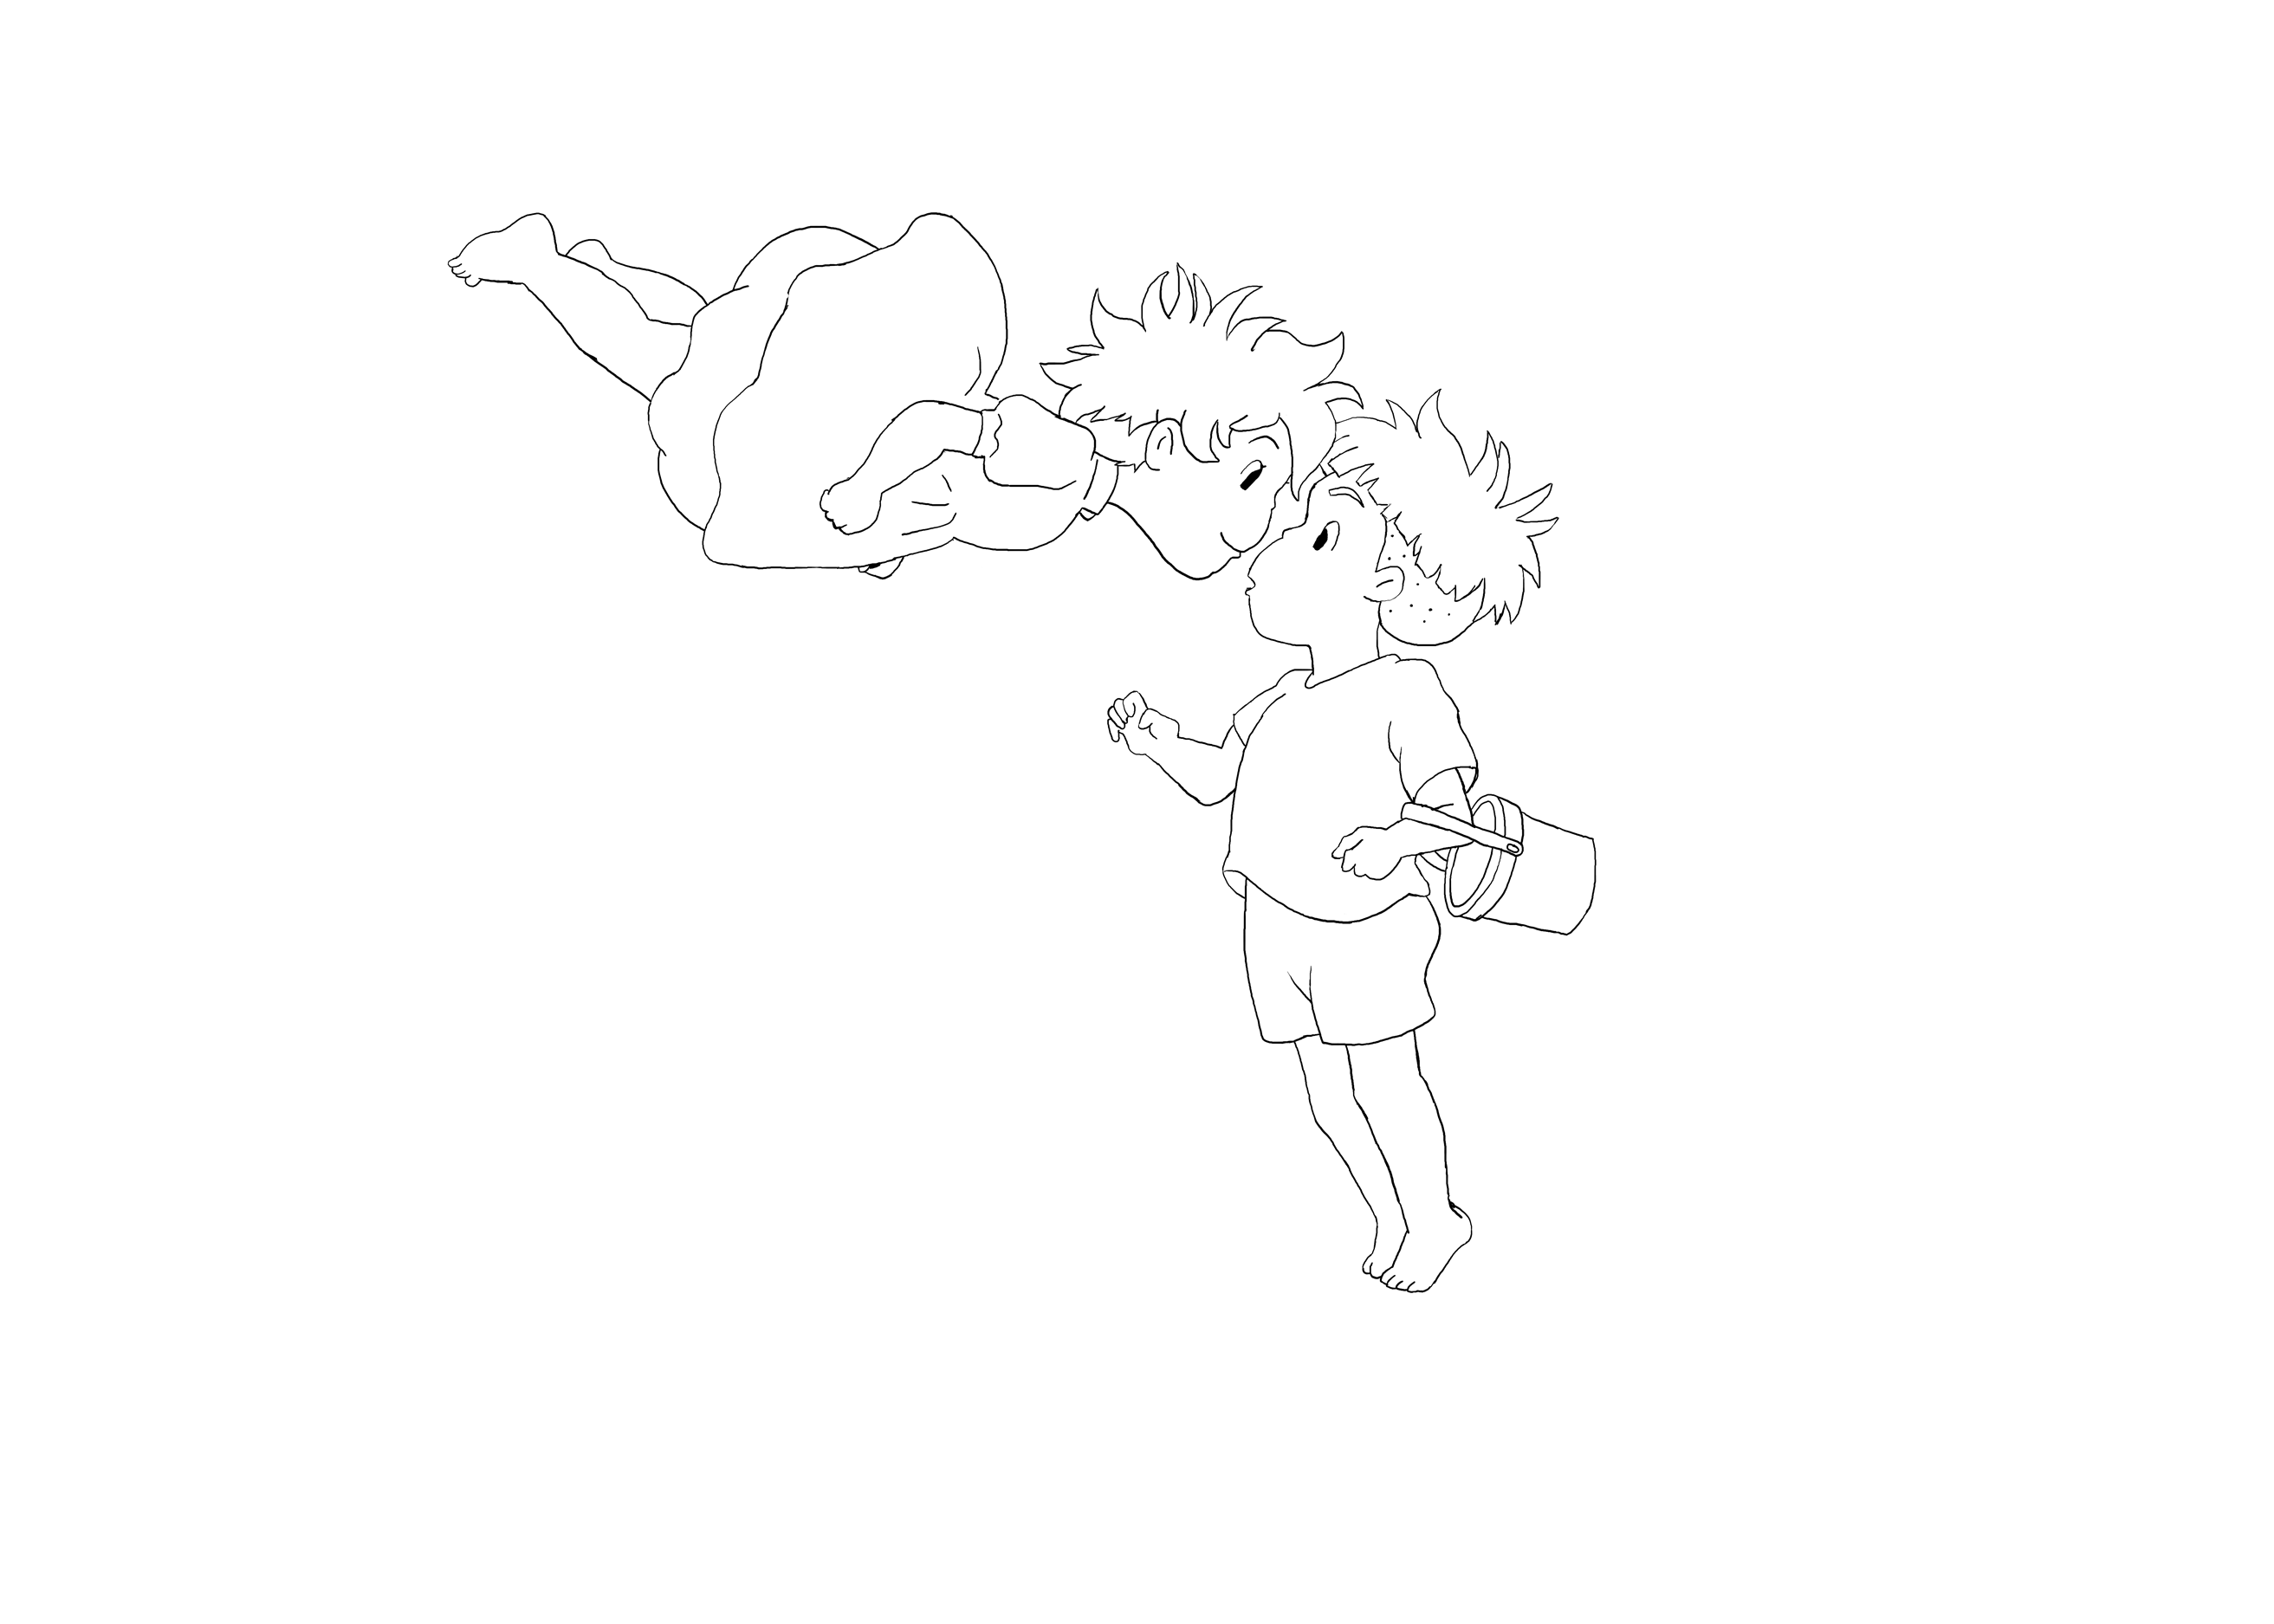 Ponyo line art version by cindyvalentine on deviantart for Ponyo coloring pages